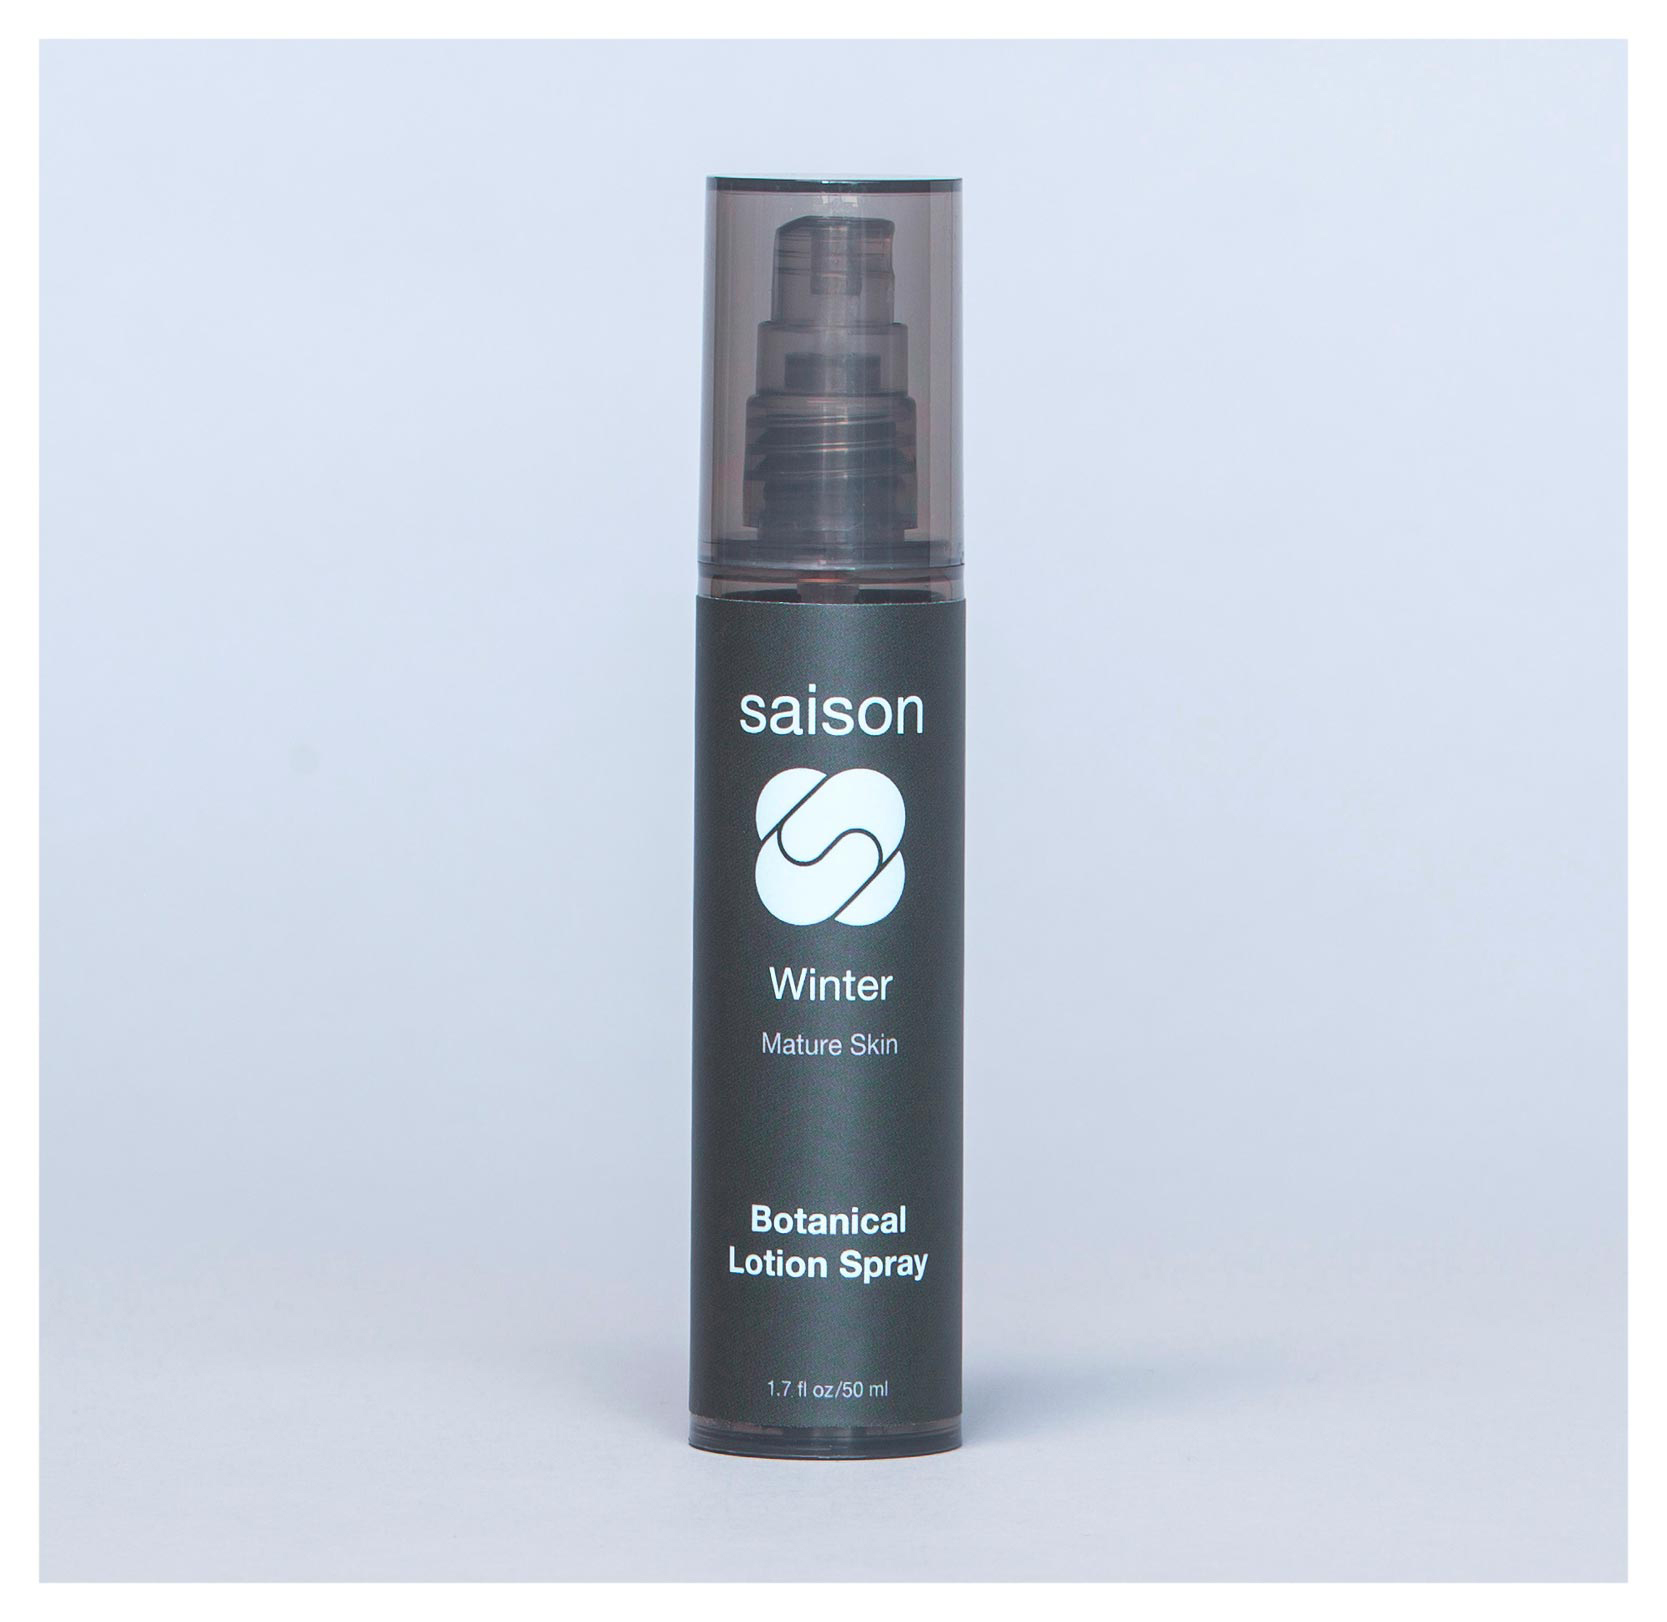 Saison Winter Botanical Lotion Spray